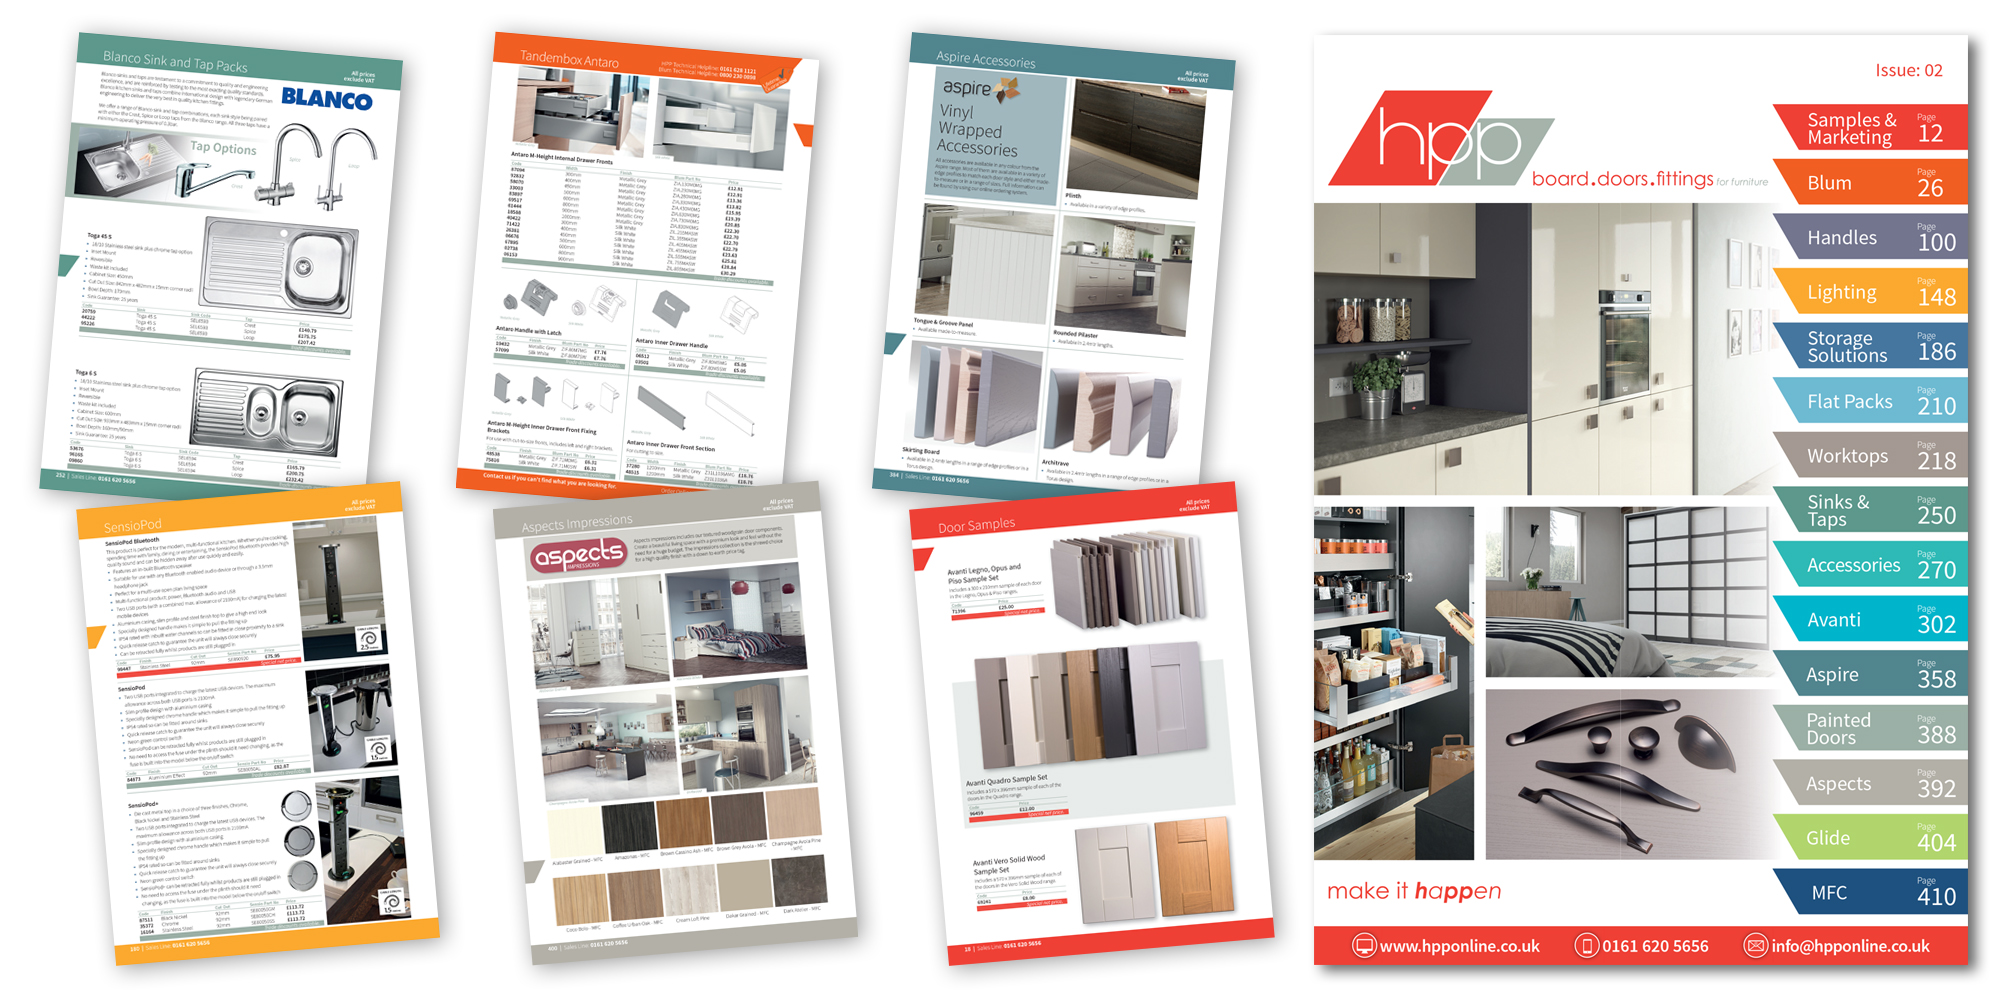 New HPP Trade Catalogue & Handles Brochure are launched!